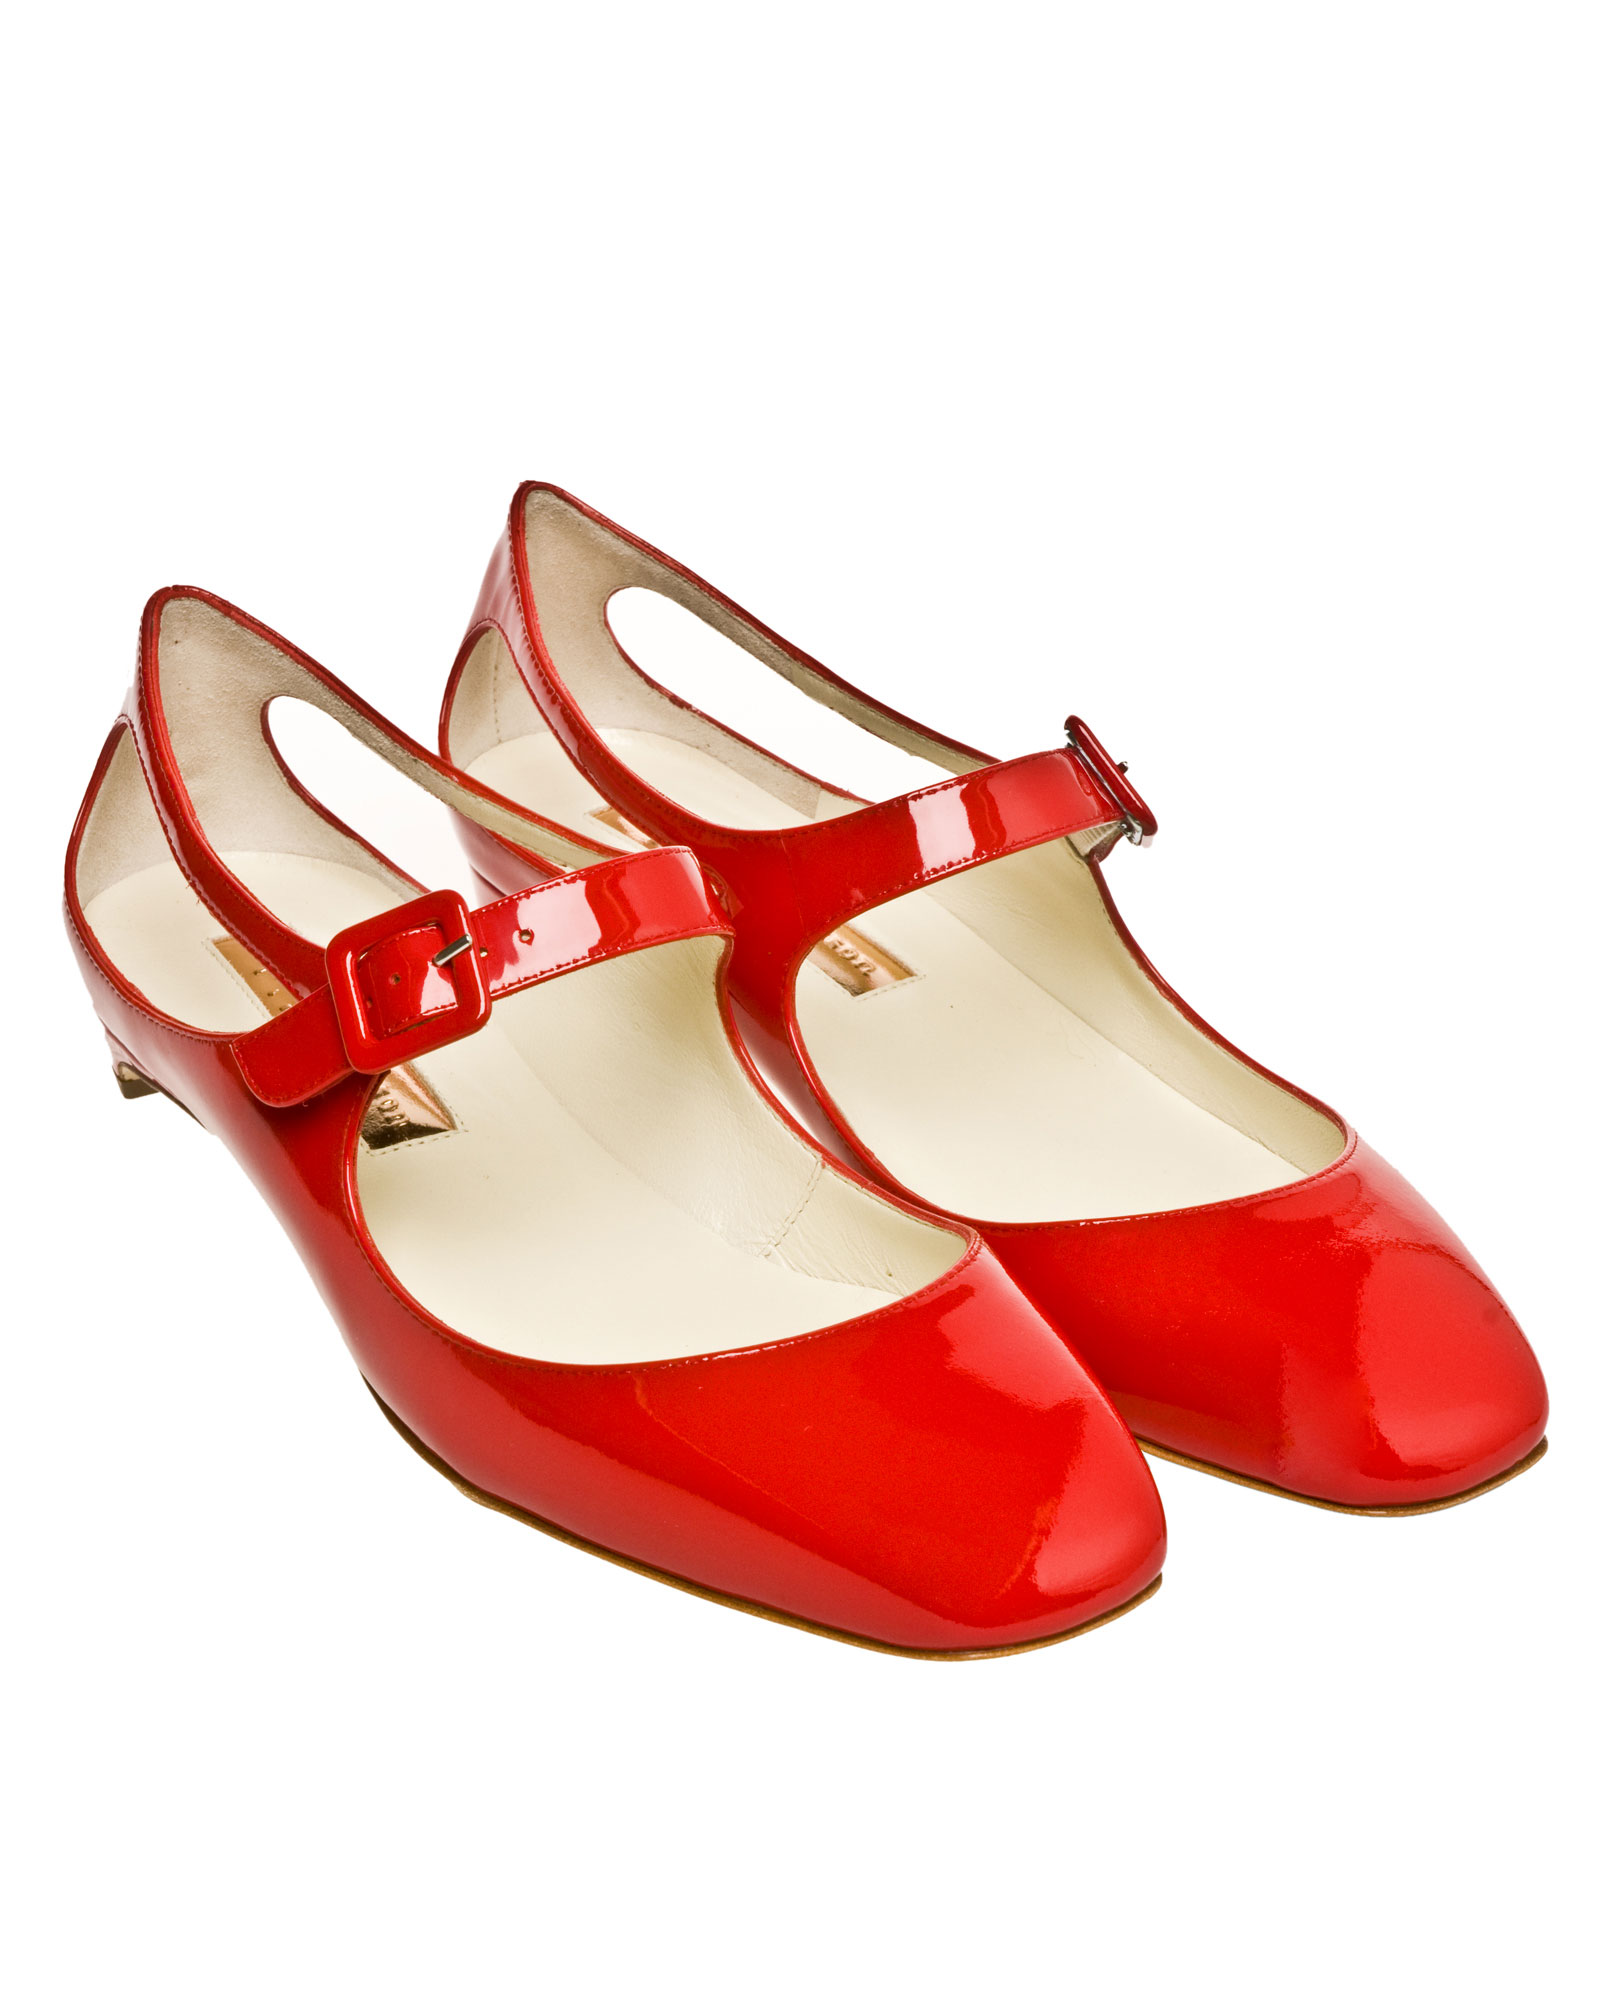 Rupert Sanderson Patent Mary Jane Flats in Red - Lyst